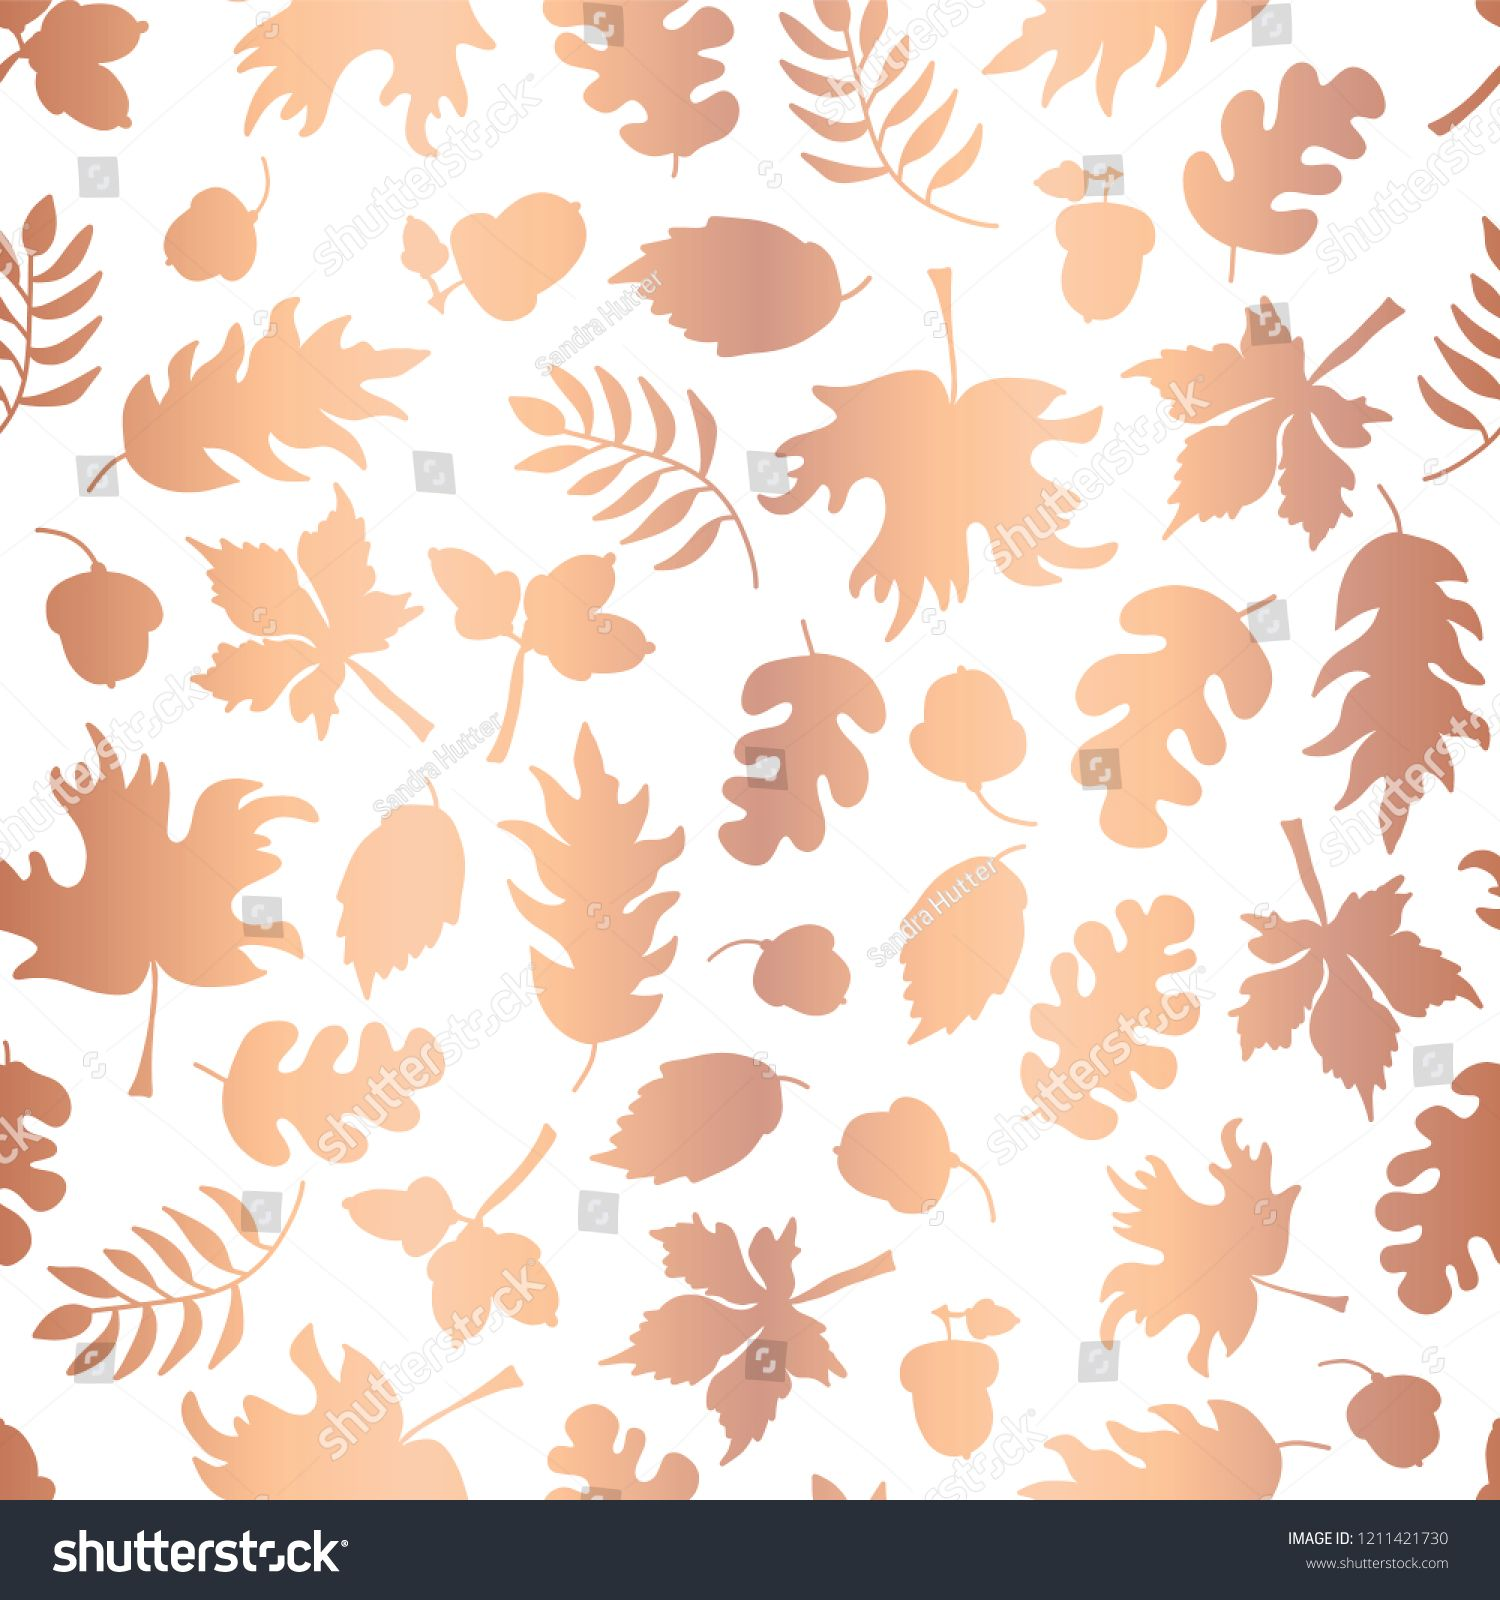 Rose gold foil autumn leaf silhouettes seamless vector background copper shiny abstract fall leaves shapes also rh in pinterest